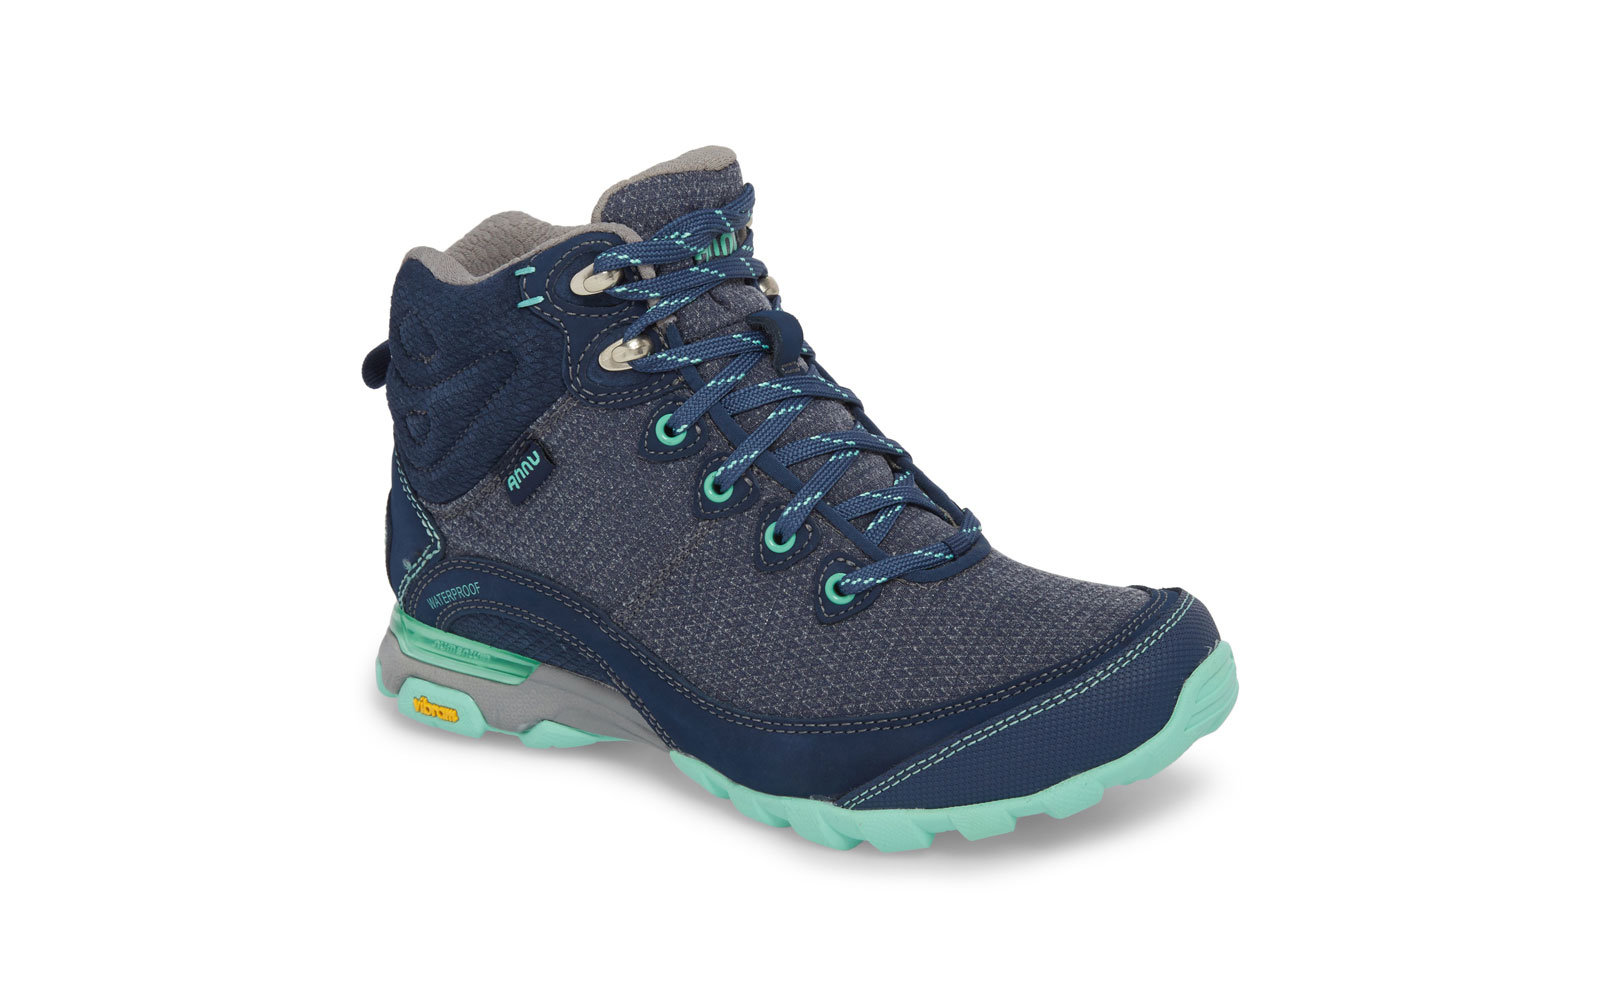 Ahnu Female Hiking Boots